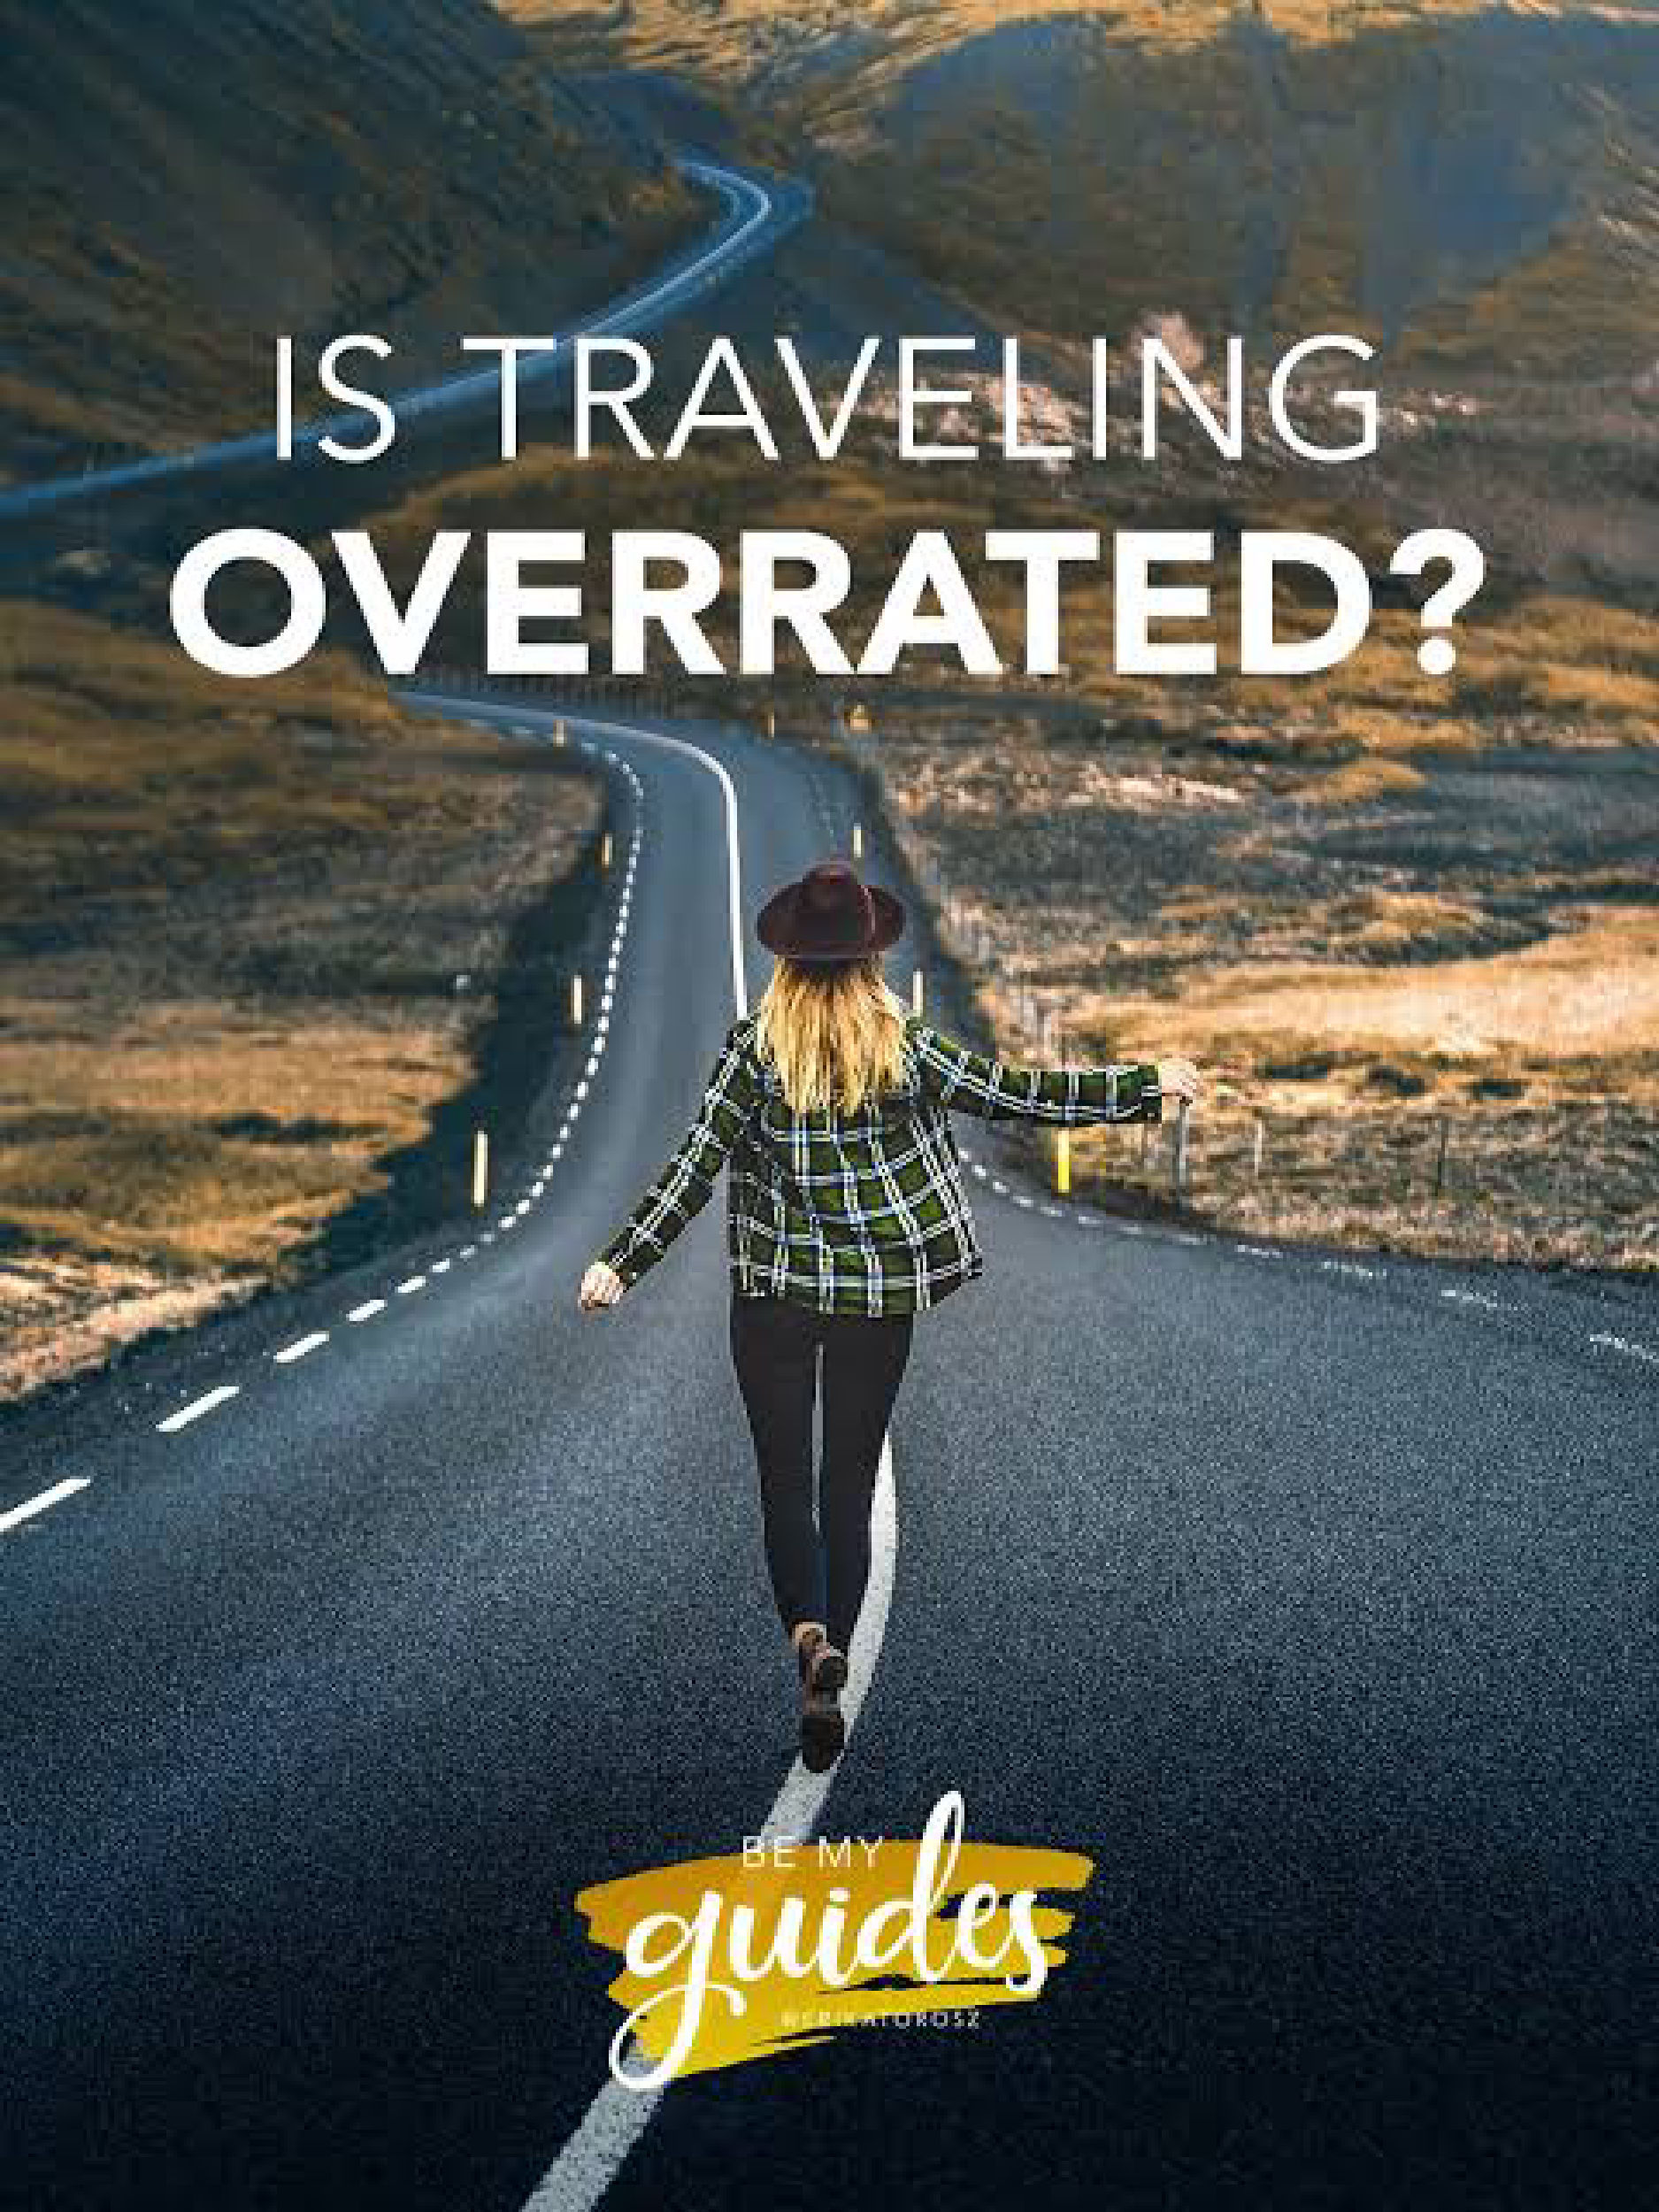 Is travelling overrated?